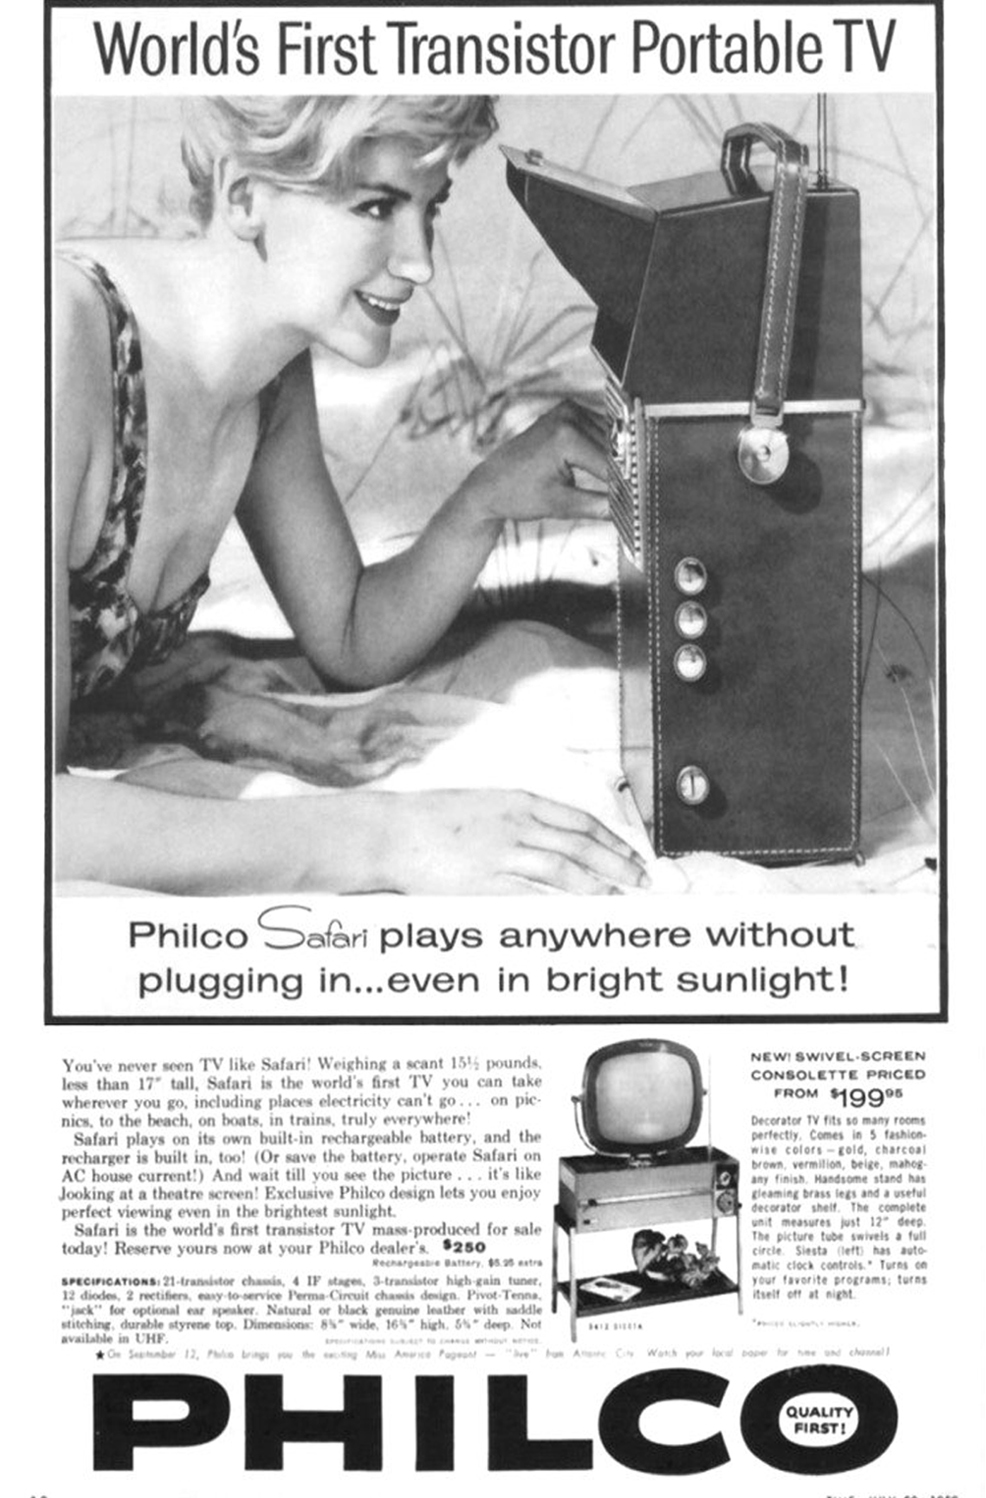 1958 Philco portable ad.jpg